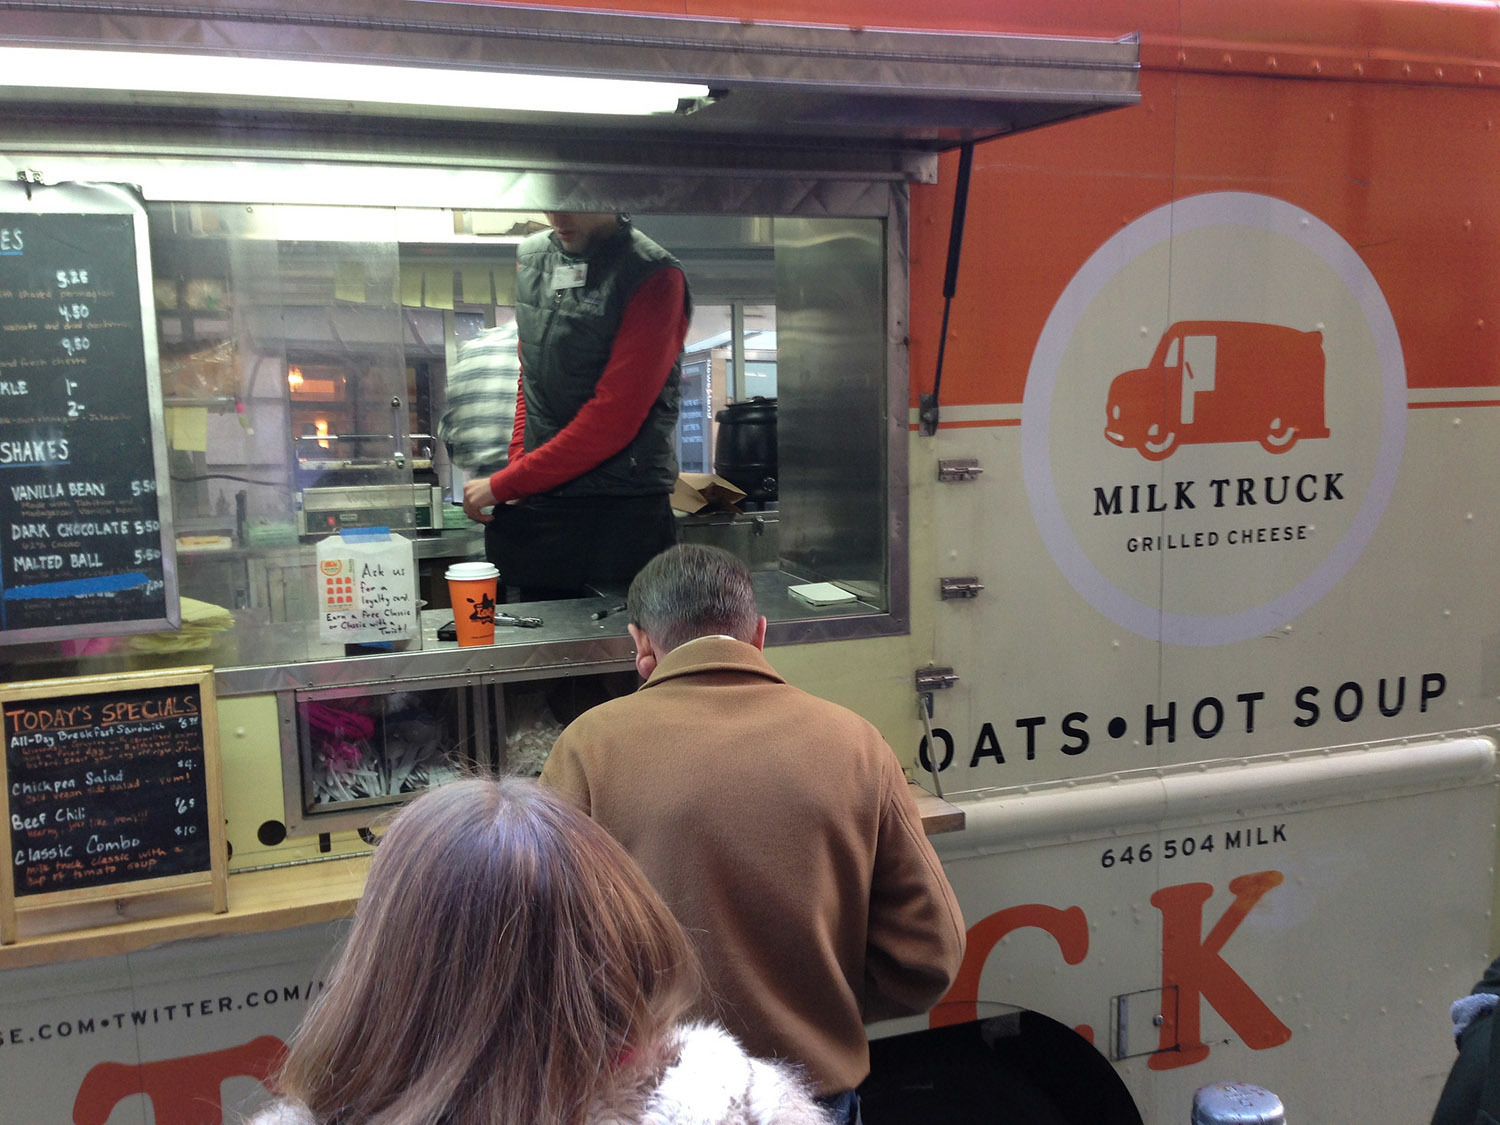 Milk Truck Grilled Cheese